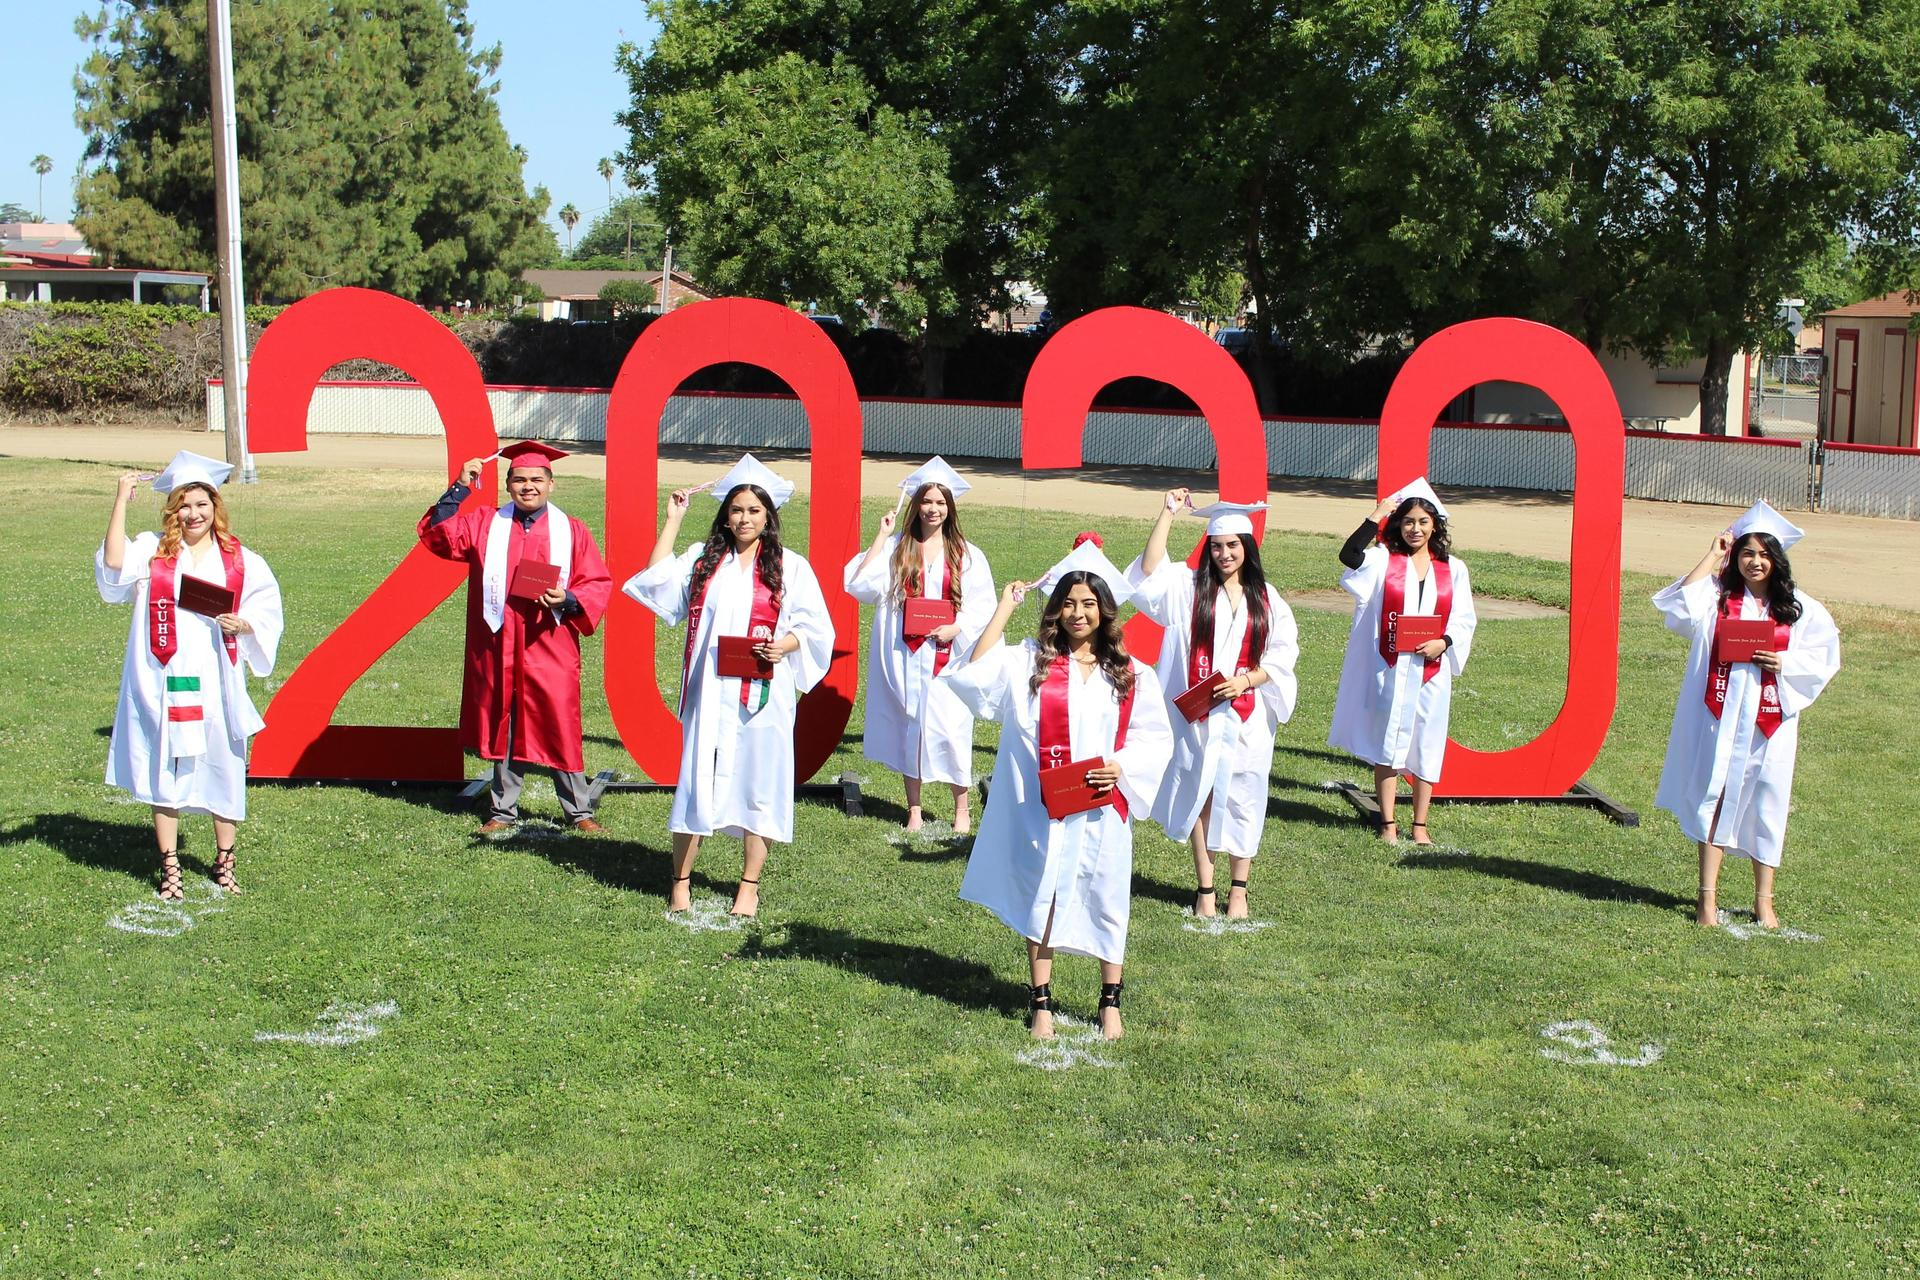 Left to right, Andrea Navarro, Miguel Quintero, Christina Morales, Samamtha Byrd, Eli Sayda Guillen, Natshelly Campos, Sharon Salas and Daniela Avalos turning their tassels